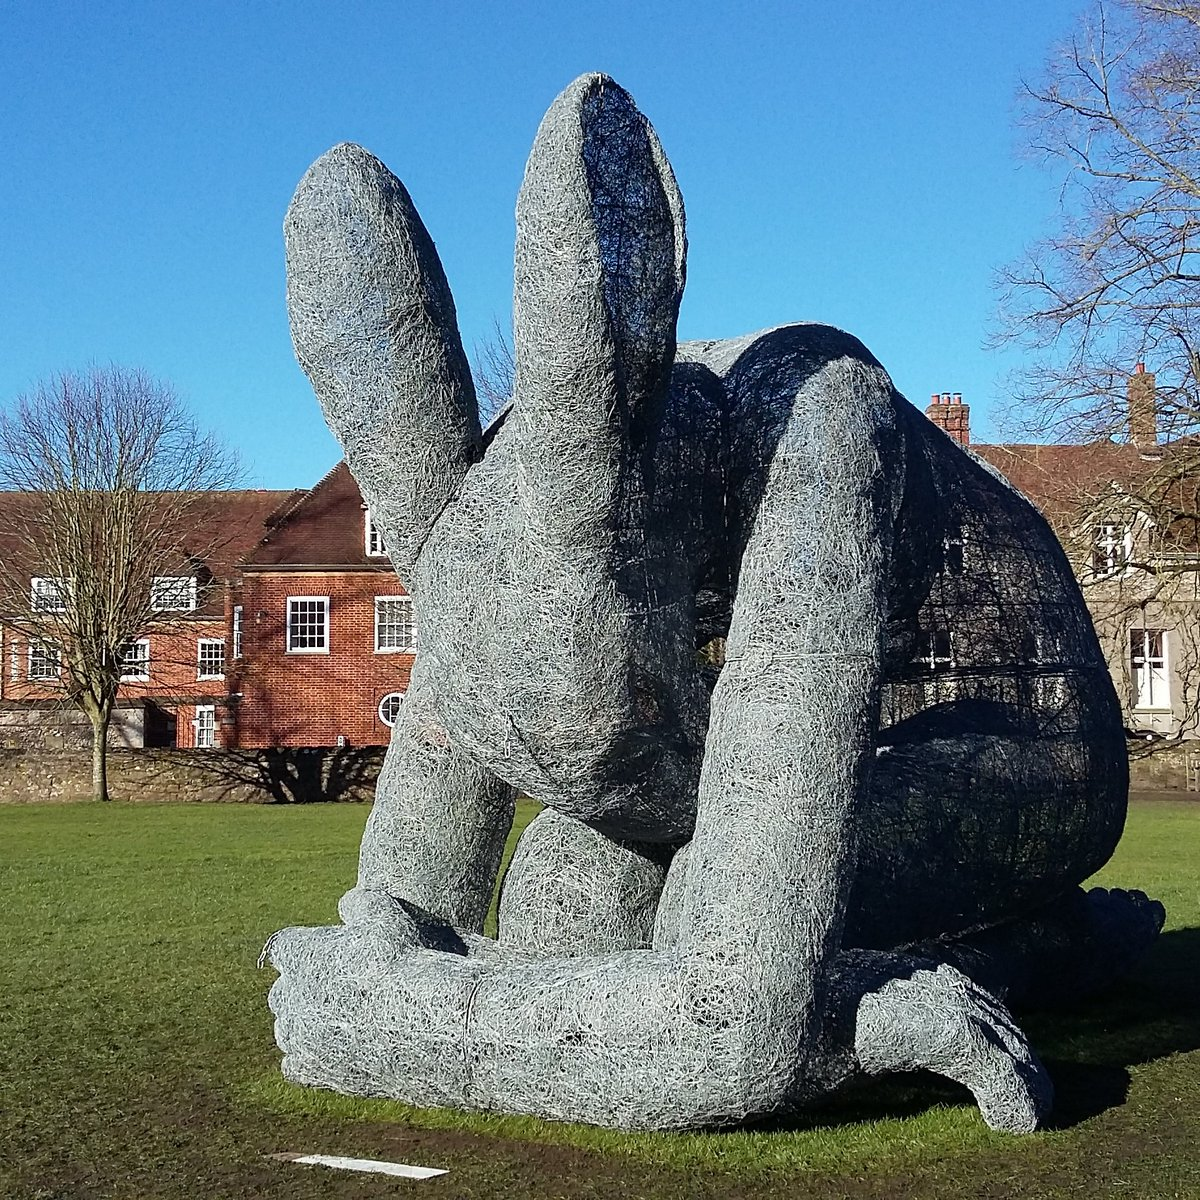 Massive sculpture relocated because people busy texting kept walking into it